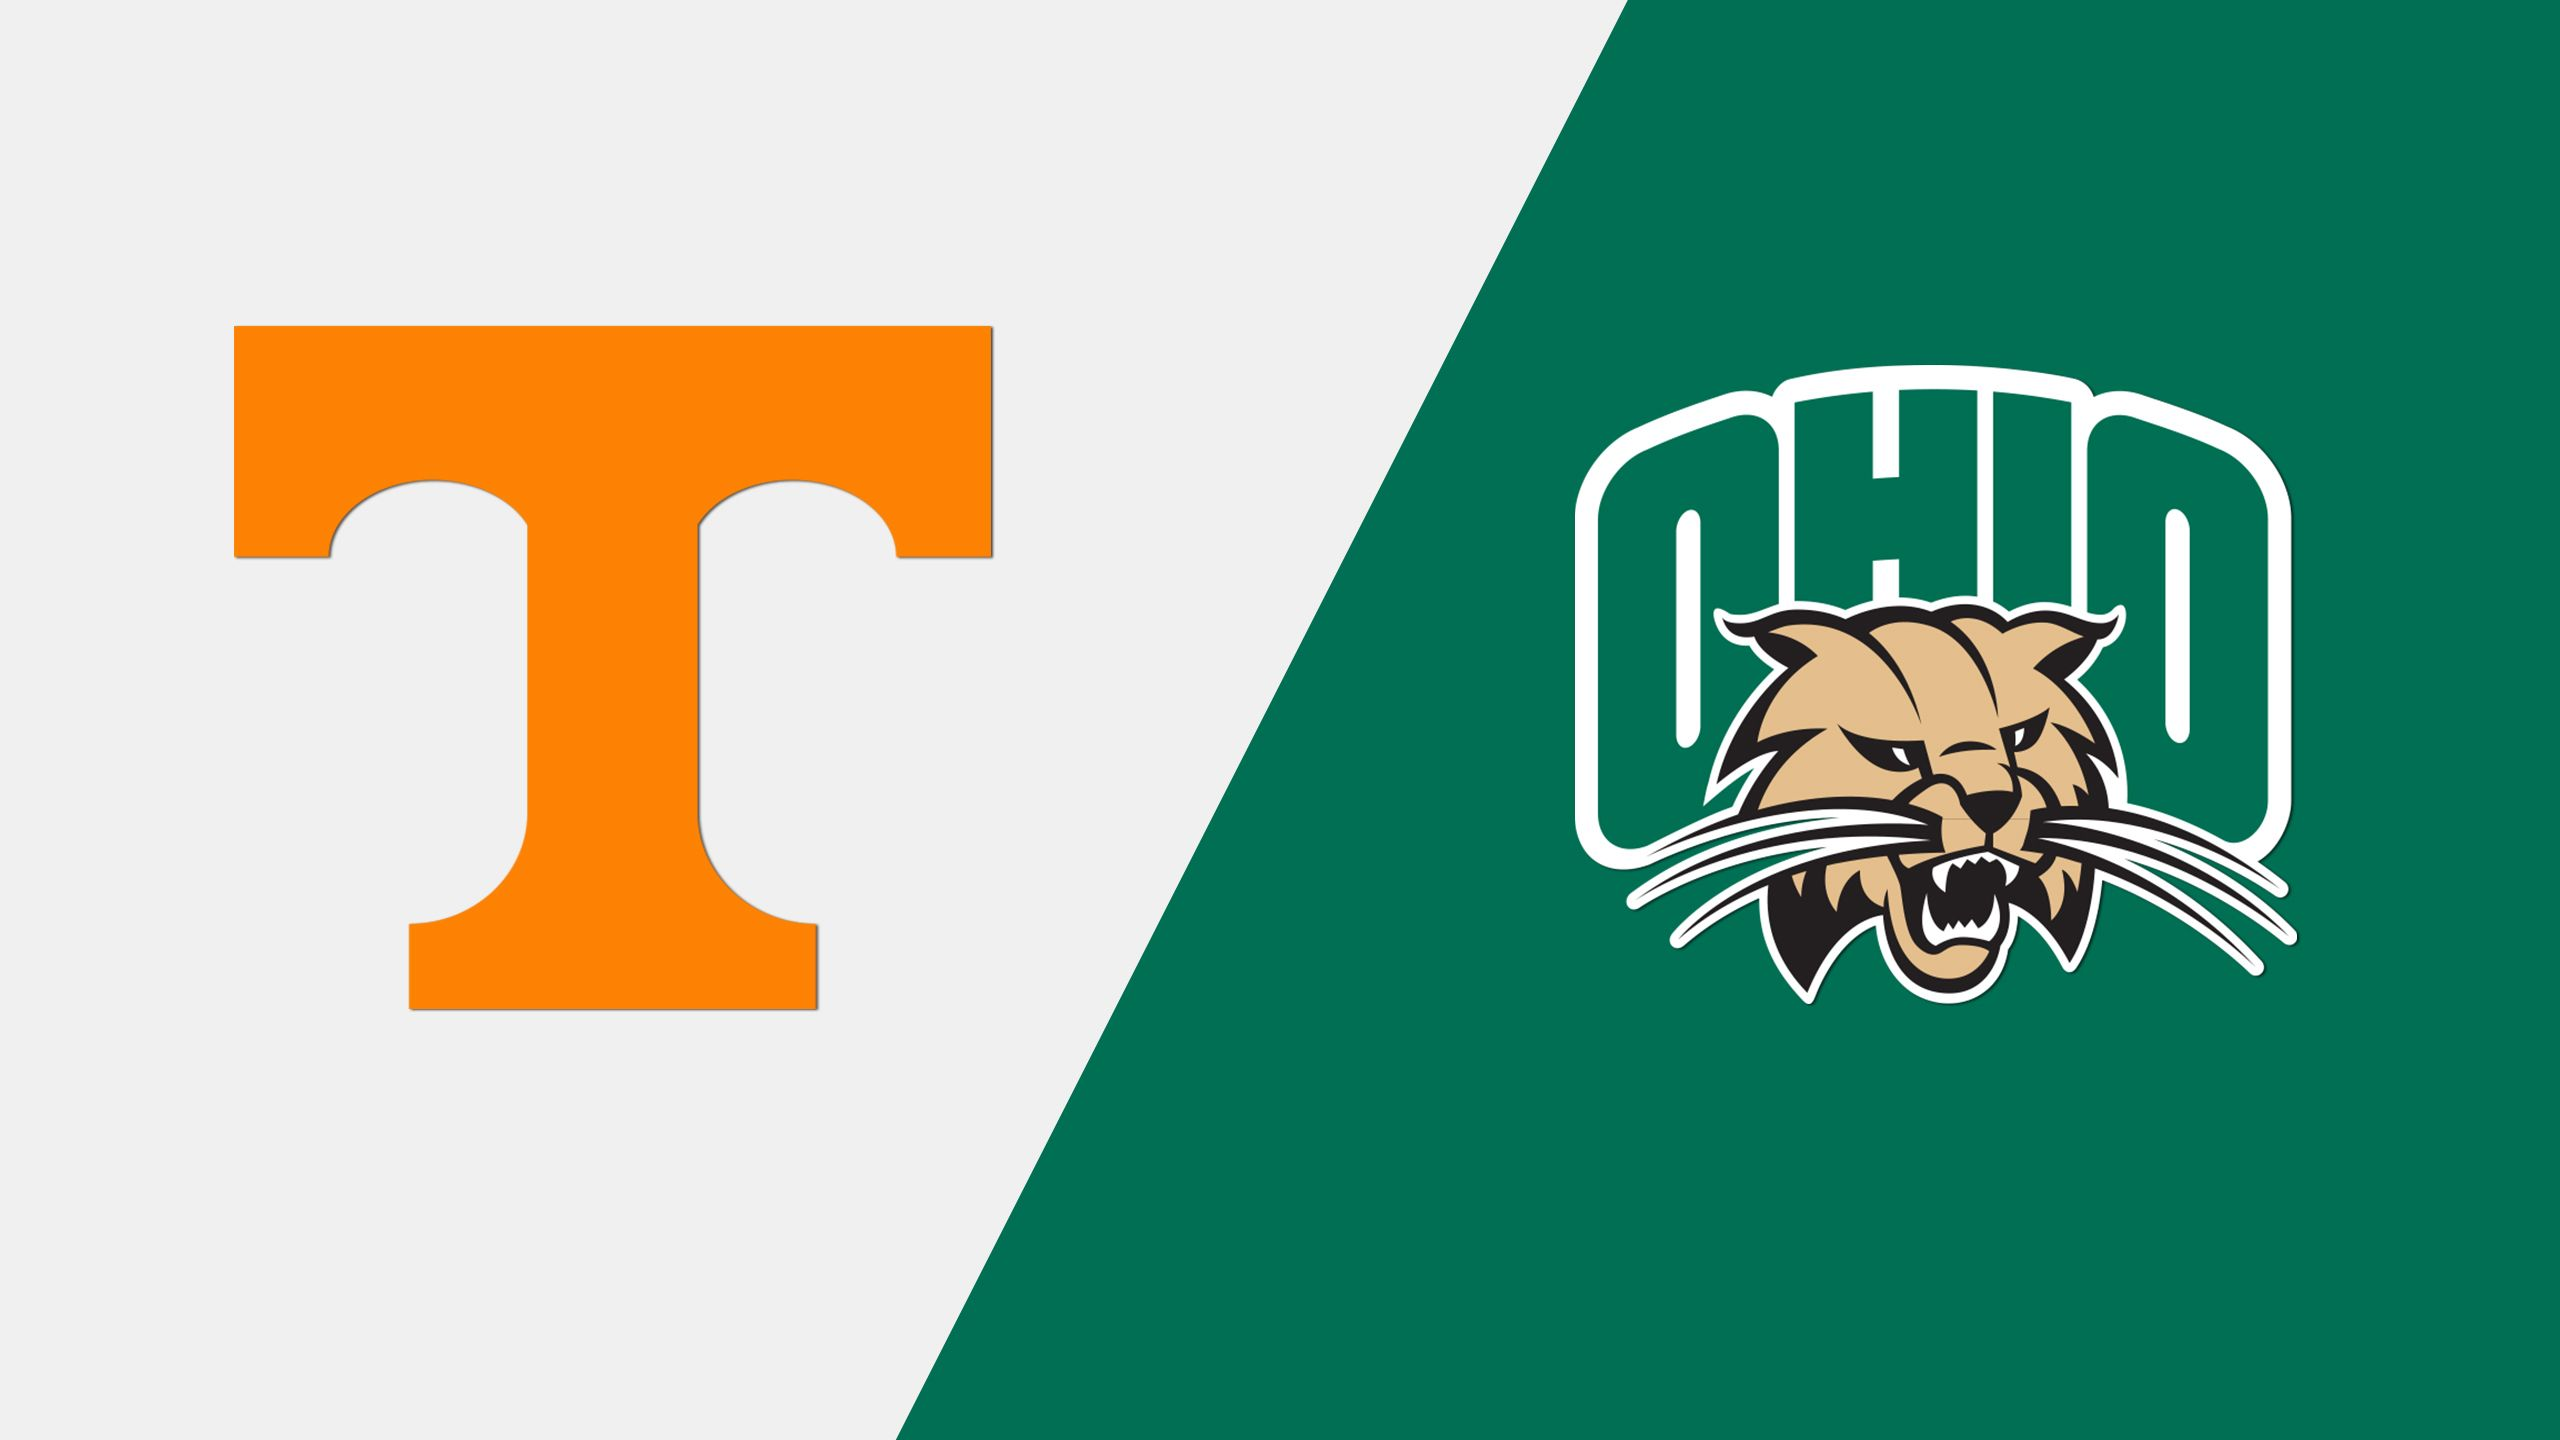 #10 Tennessee vs. Ohio (Site 8 / Game 6) (NCAA Softball Championship)